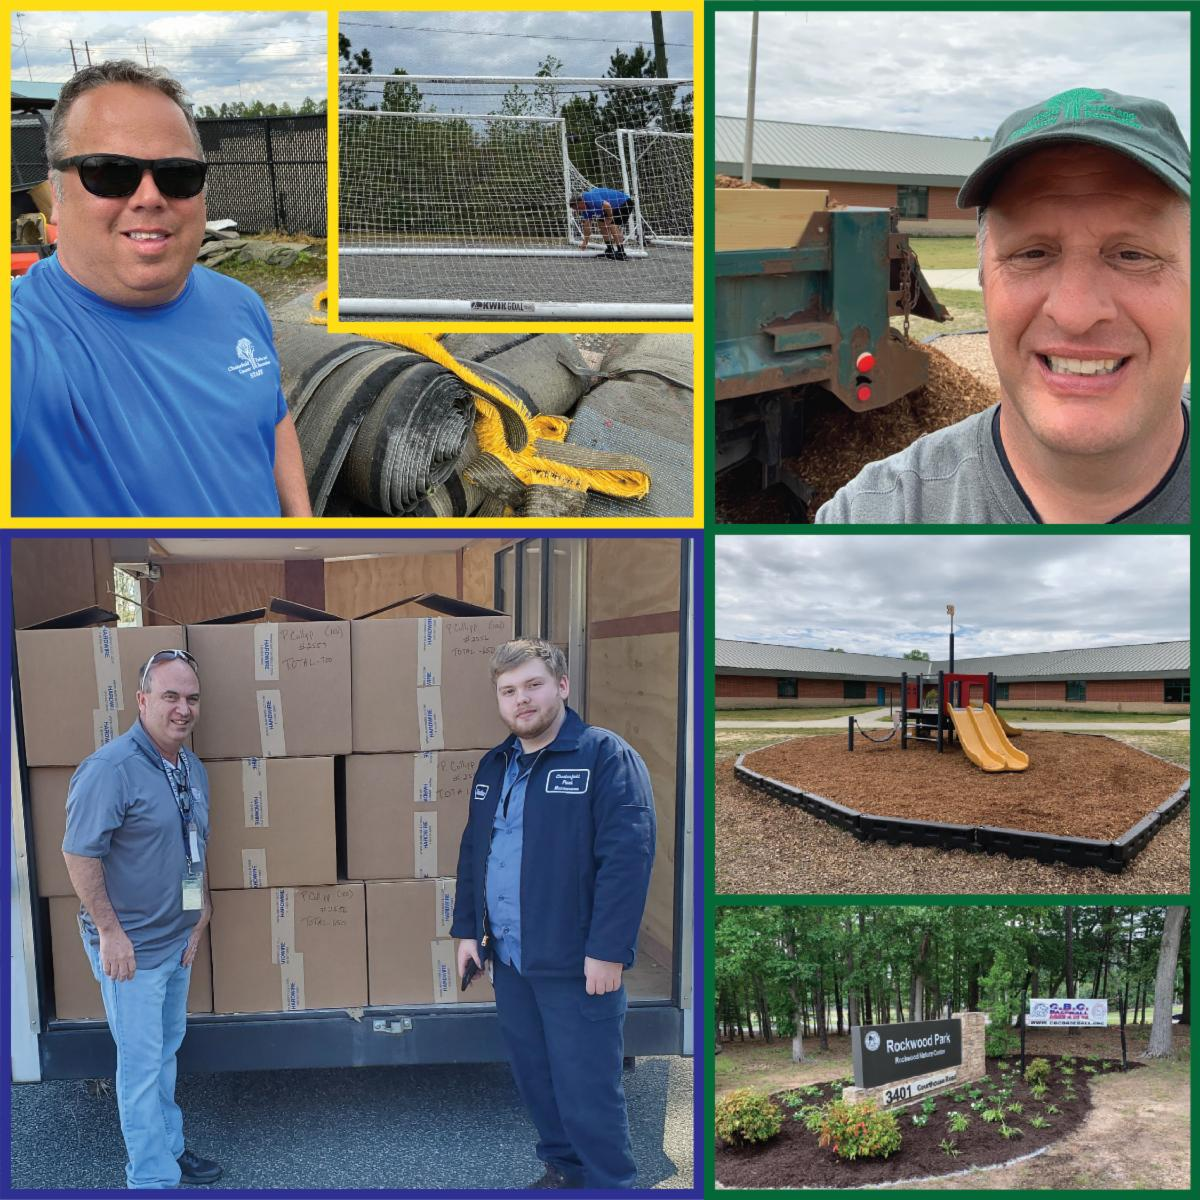 Parks and Recreations - Redeployments - Clockwise, from top left: Lynn Hall with turf and nets at River City Sportsplex; Mark McCoy assists with landscaping at Marguerite Christian Elementary School and Rockwood Park; Mark Pinney (left) and Jonathan Furrow